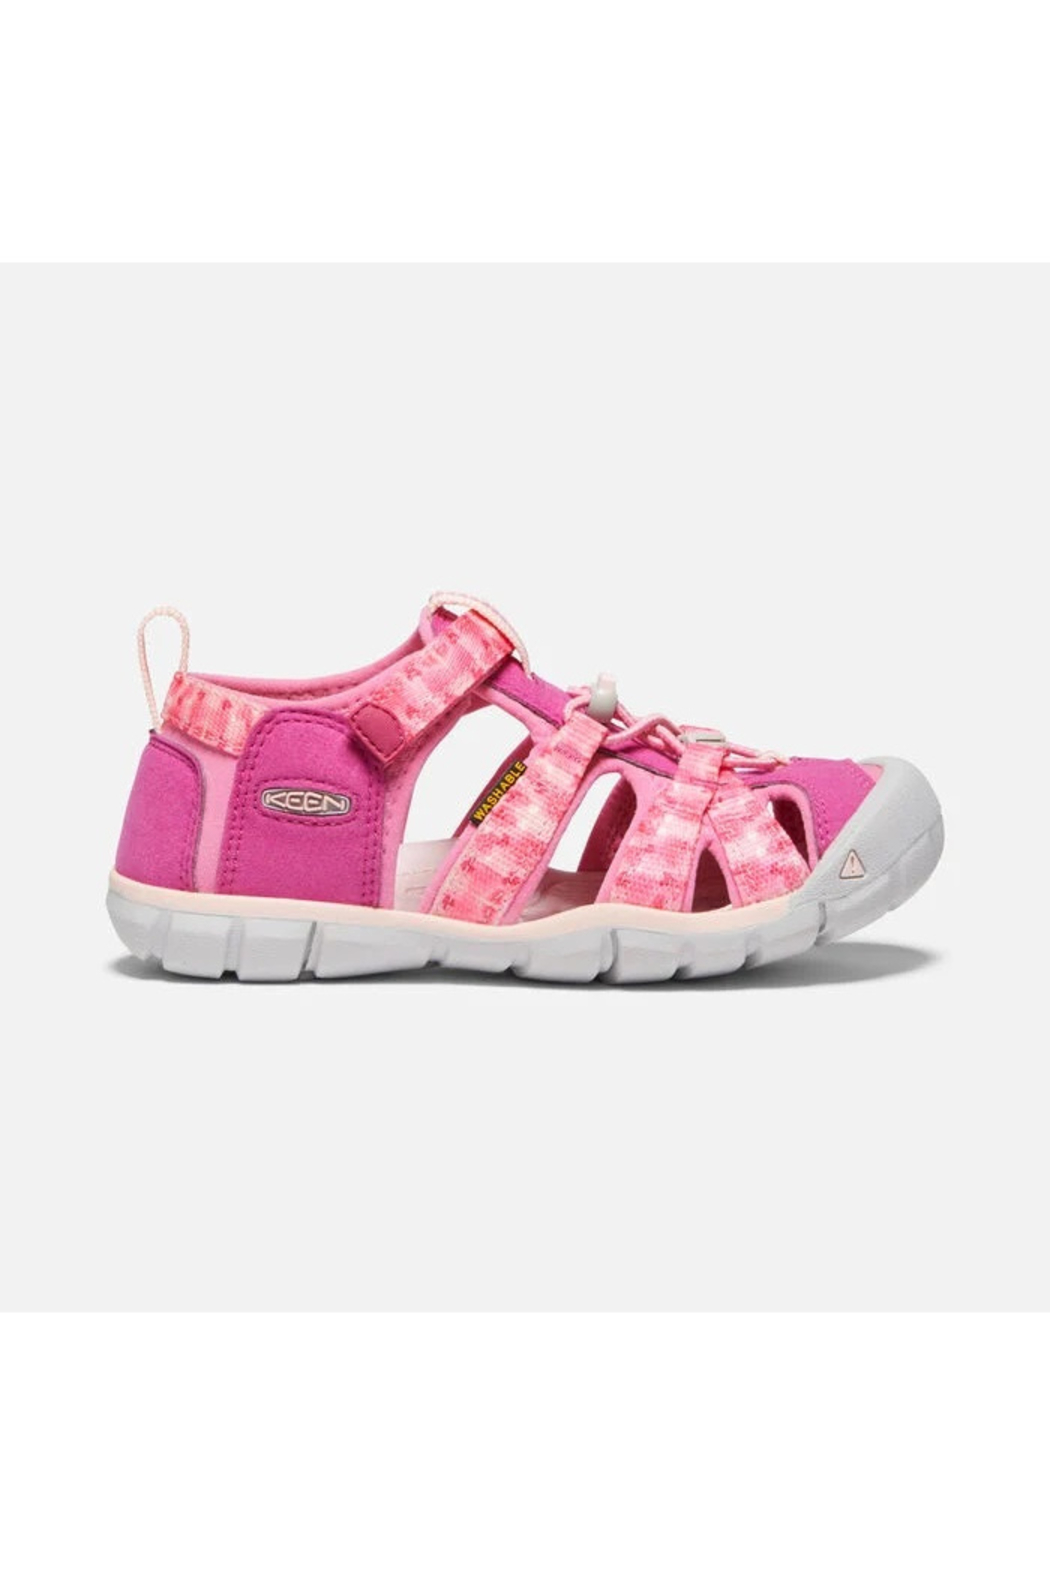 Keen Big Kids Seacamp II CNX in Very Berry/Pink Carnation - Front Full Image